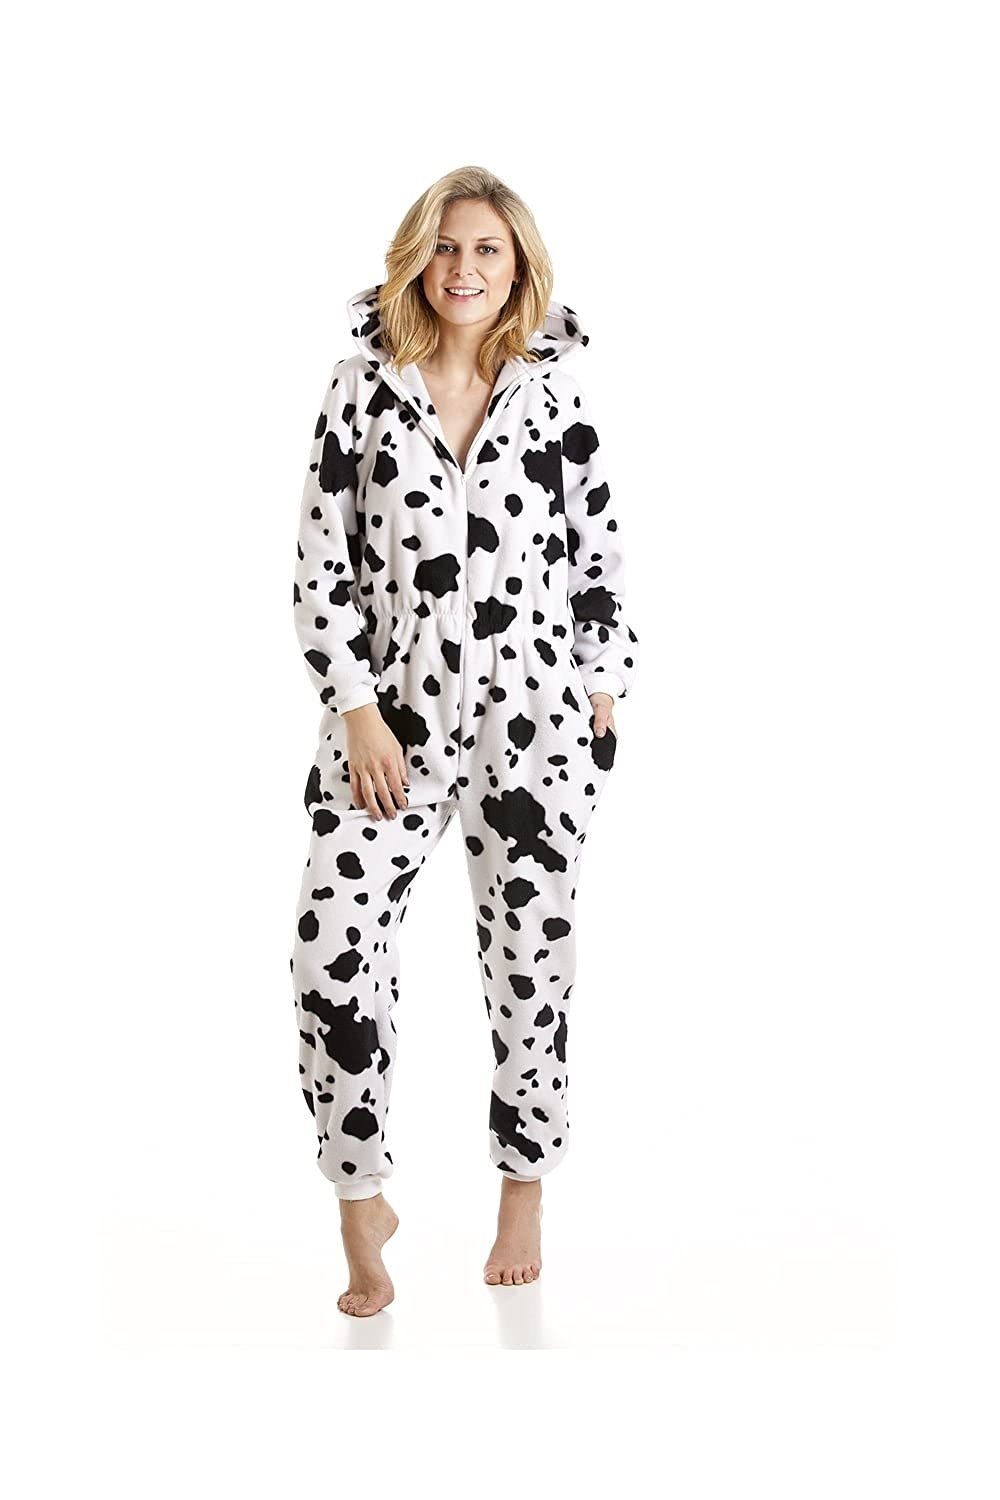 Amazon.com: Womens Ladies Black And White Dalmatian Print All In One Hooded Pajama Jumpsuit 10/12 WHITE: Camille: Clothing